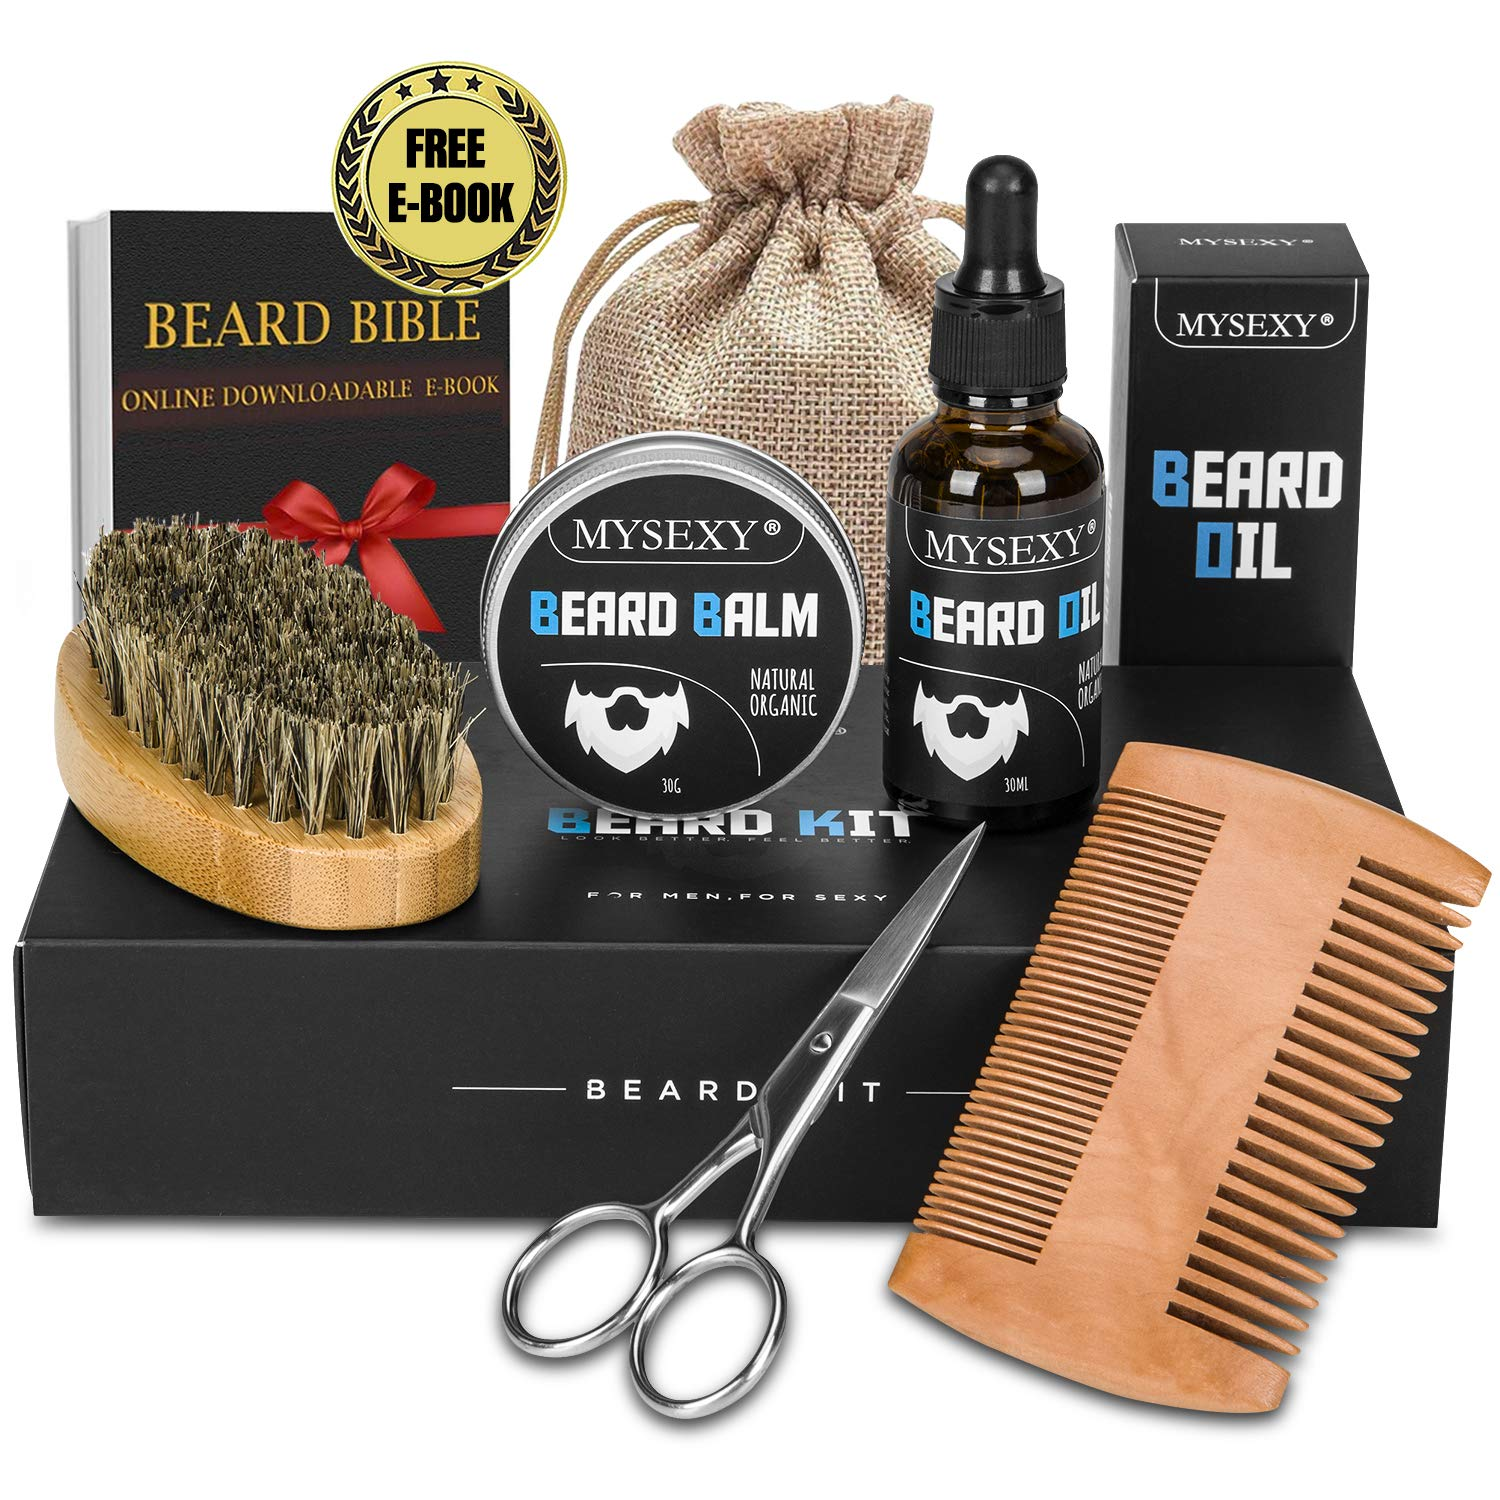 Beard Grooming Kit for Men,MYSEXY Ultimate Beard Care Kit with 100% Natural Unscented Leave-in Beard Oil, Beard Balm, Boar Beard Brush, Wood Comb & Mustache Scissors, Perfect Gift for Men